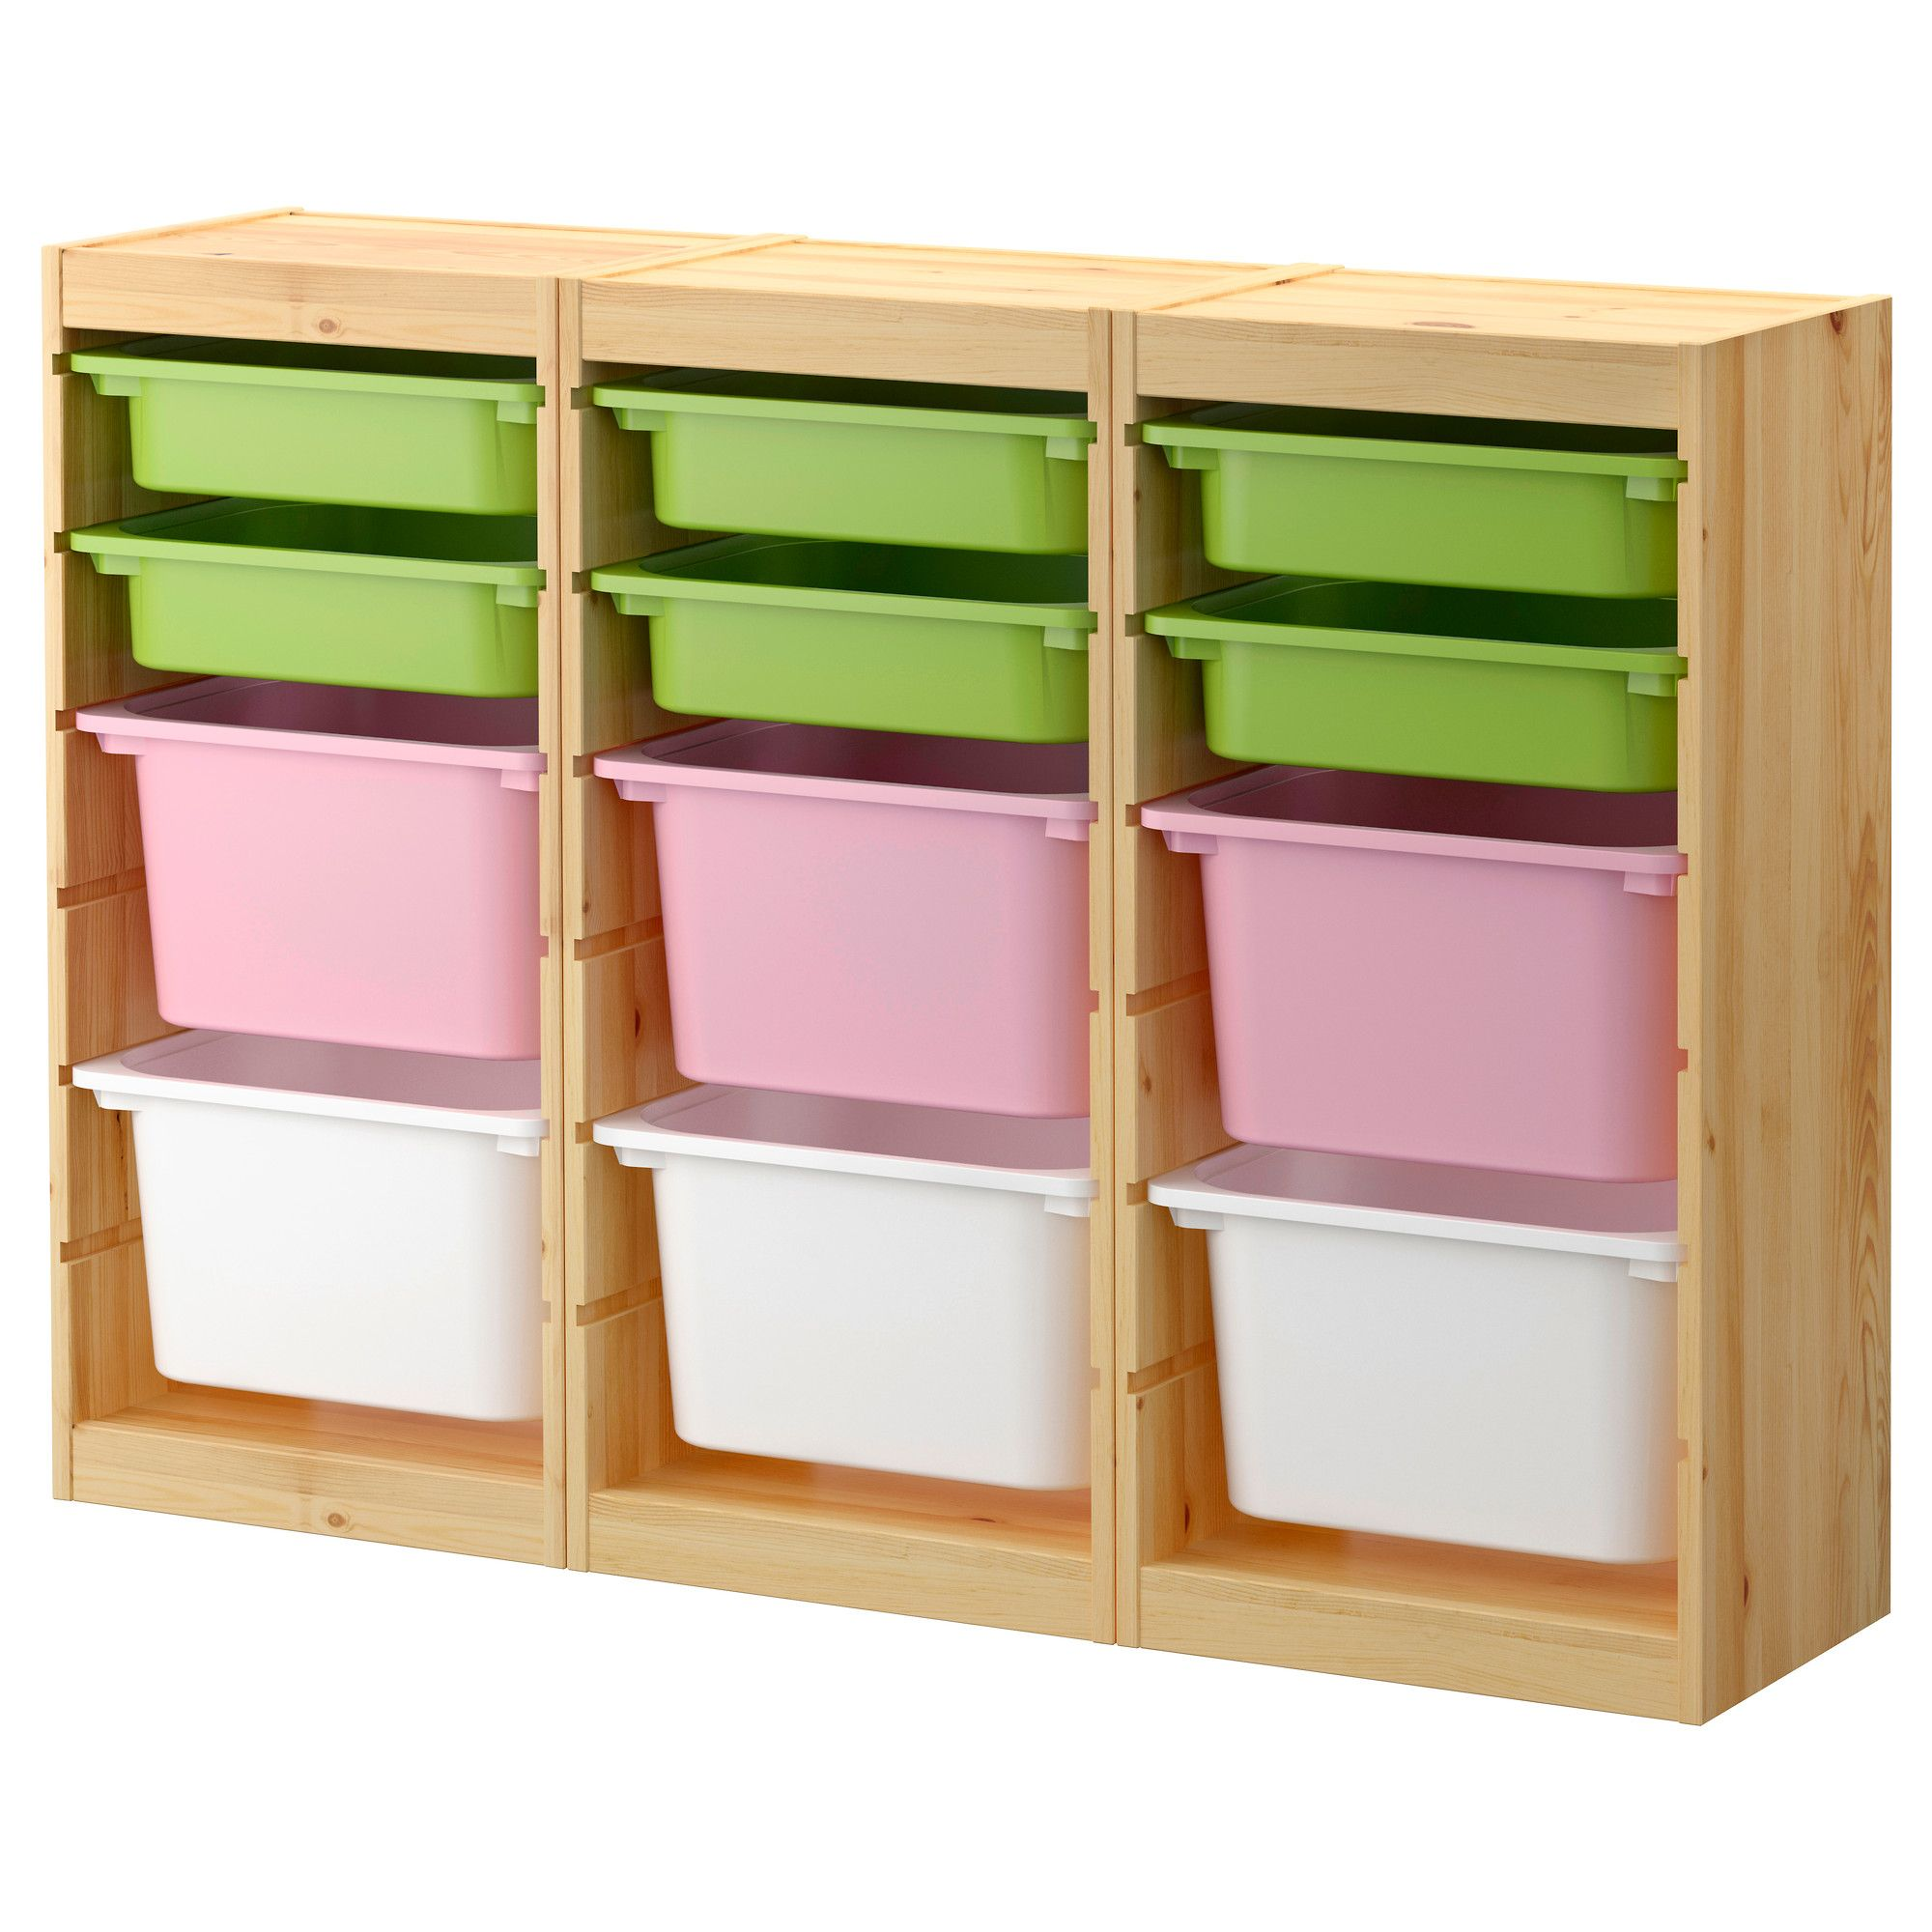 Playroom closet trofast storage combination with boxes for Ikea box shelf unit